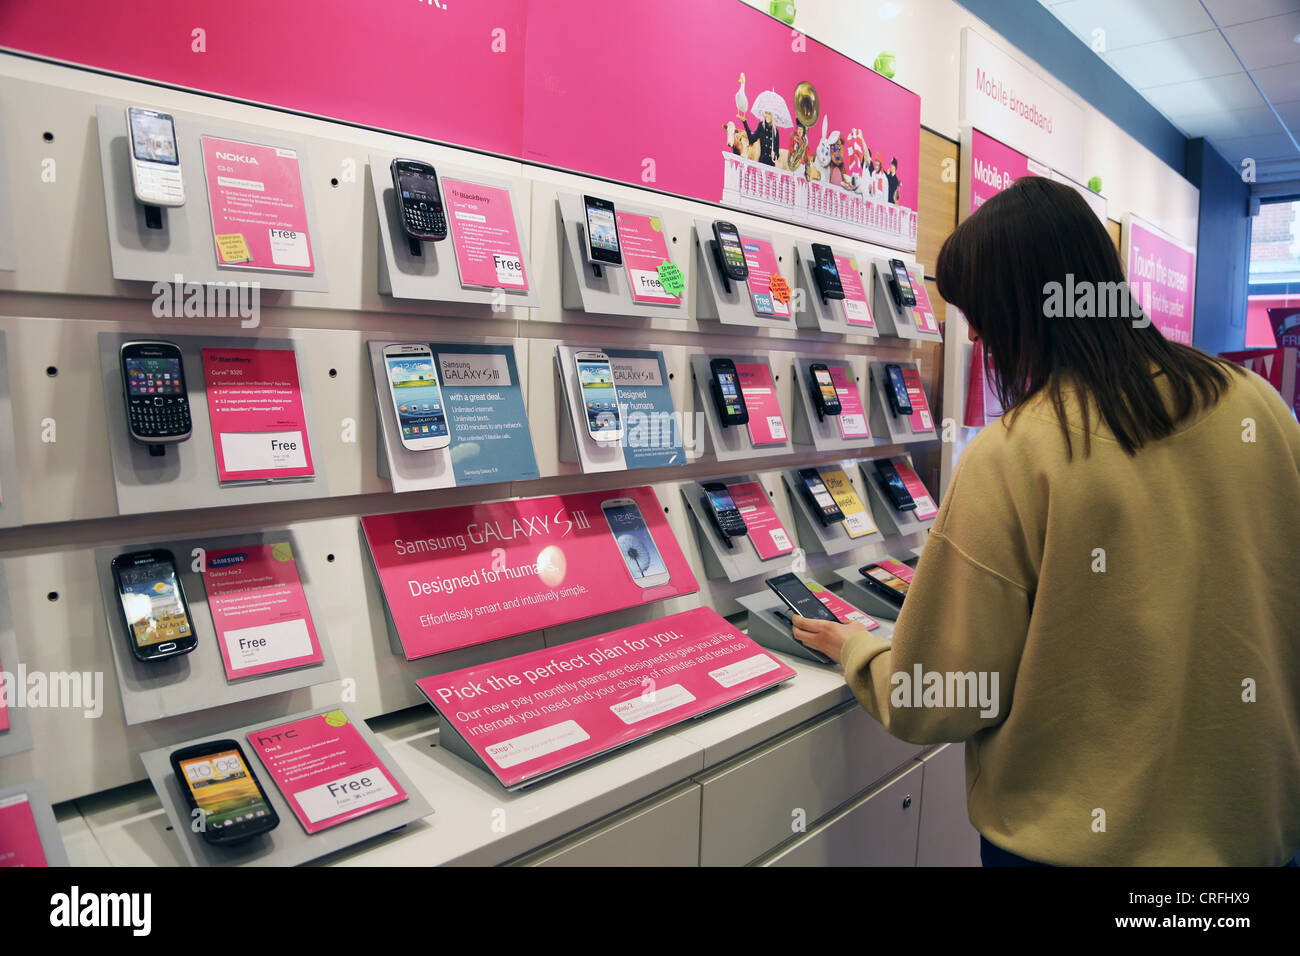 3261f1e24c7 Customers Looking At Phones in Mobile Phone Shop Surrey England ...